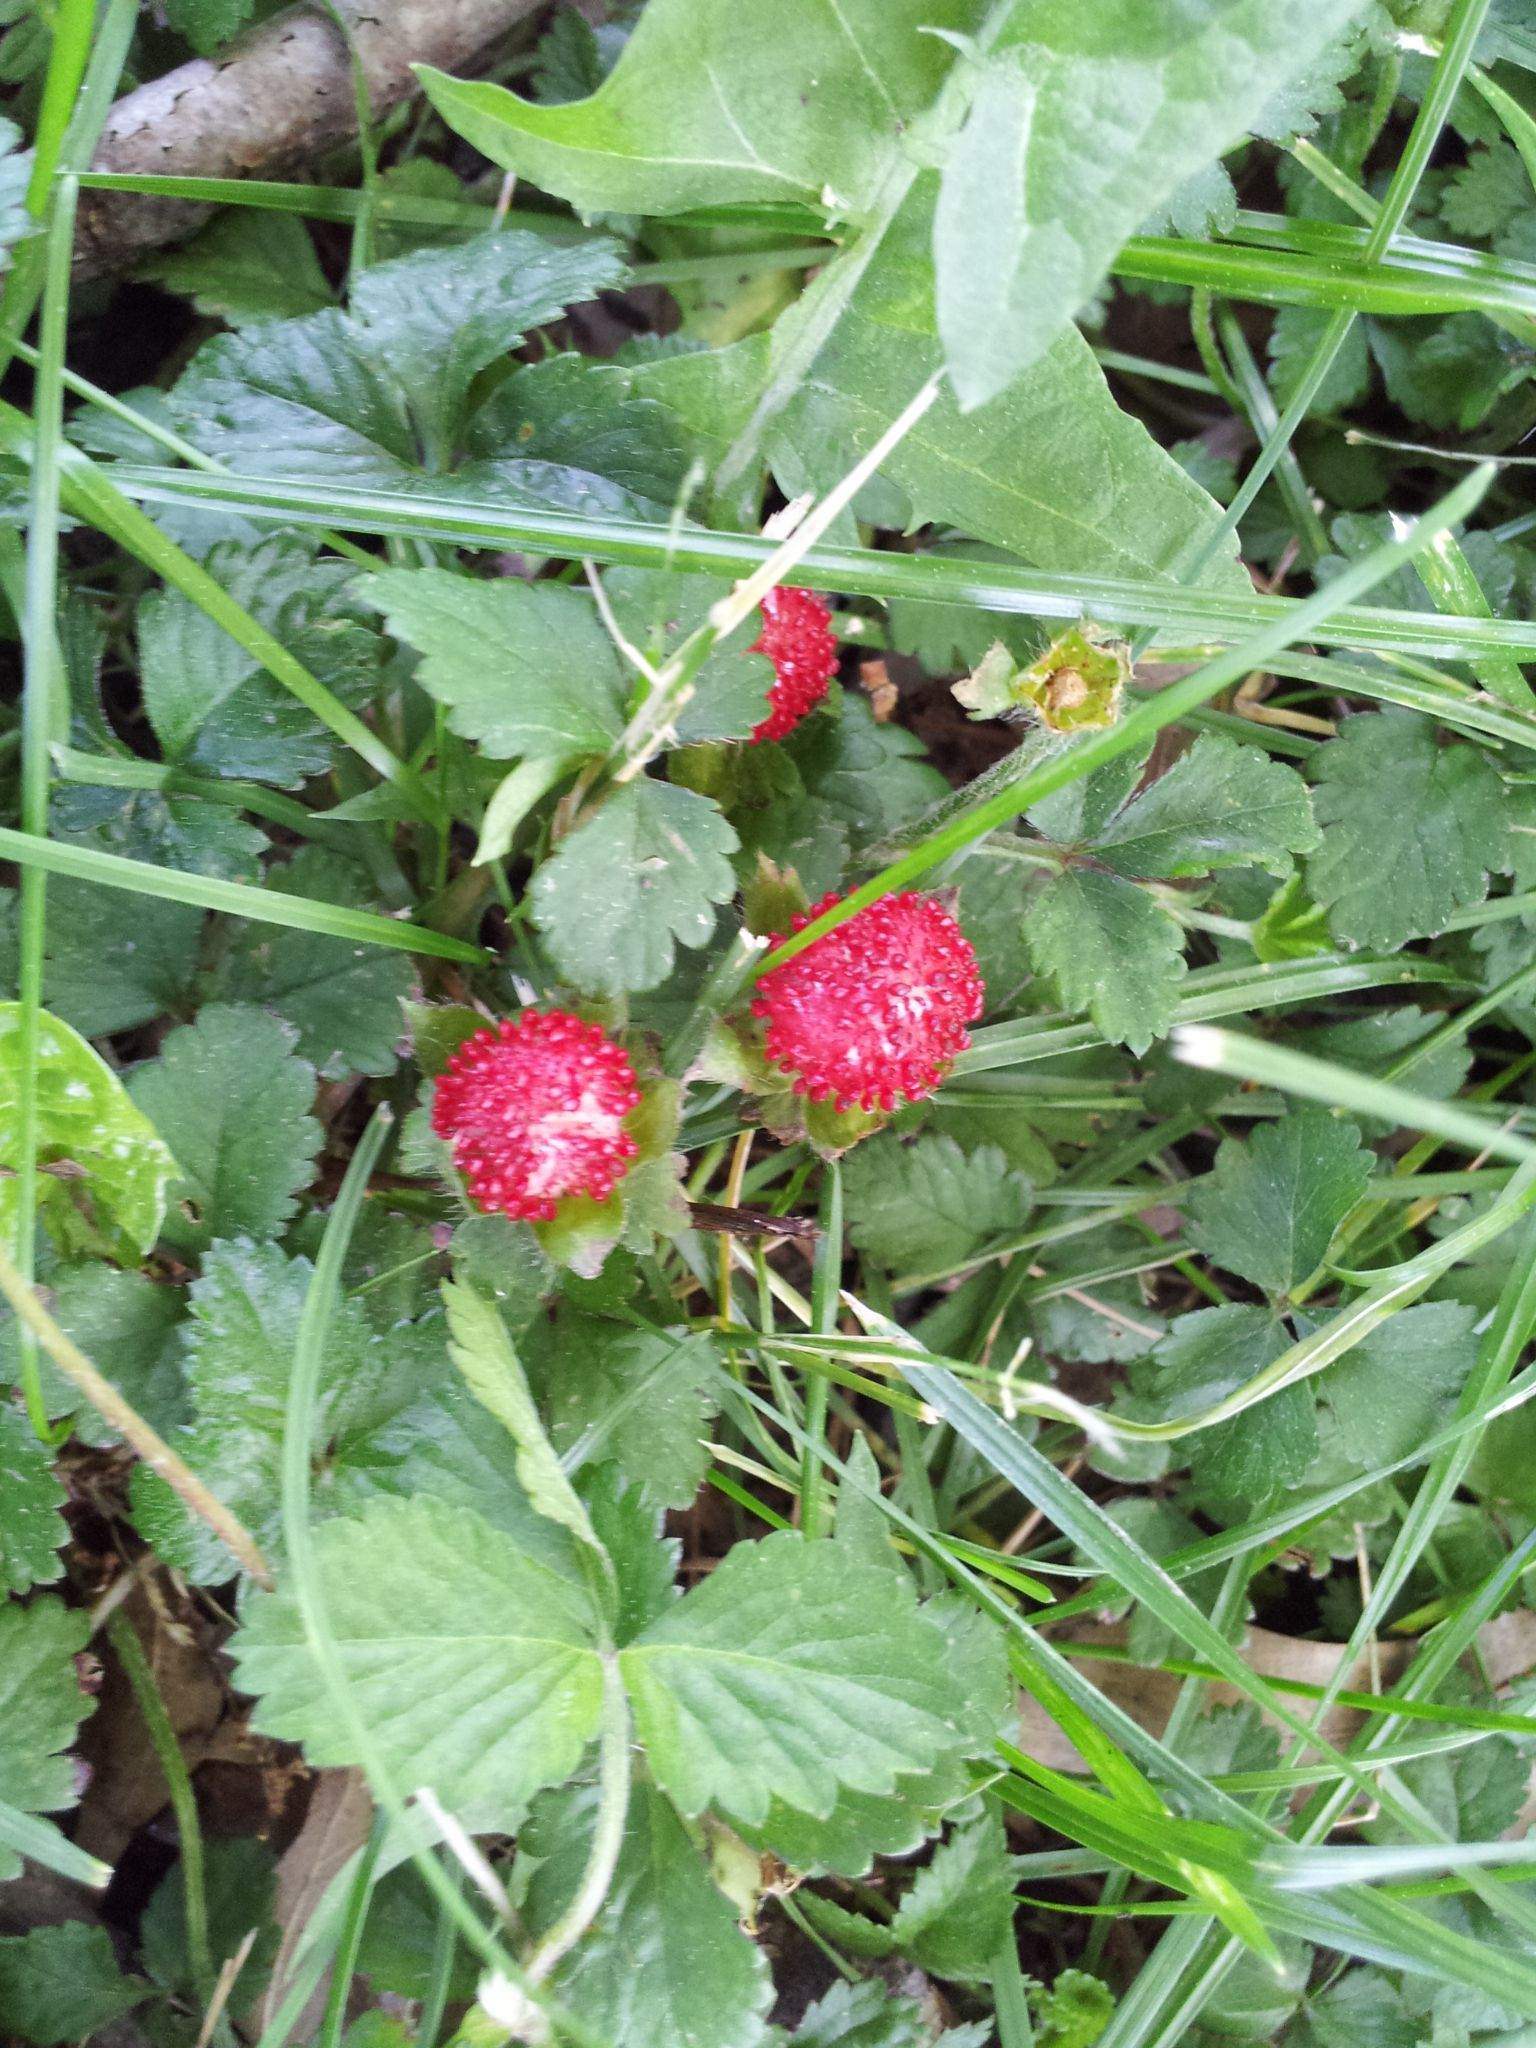 I Have Wild Strawberries In My Yard Moving Them To